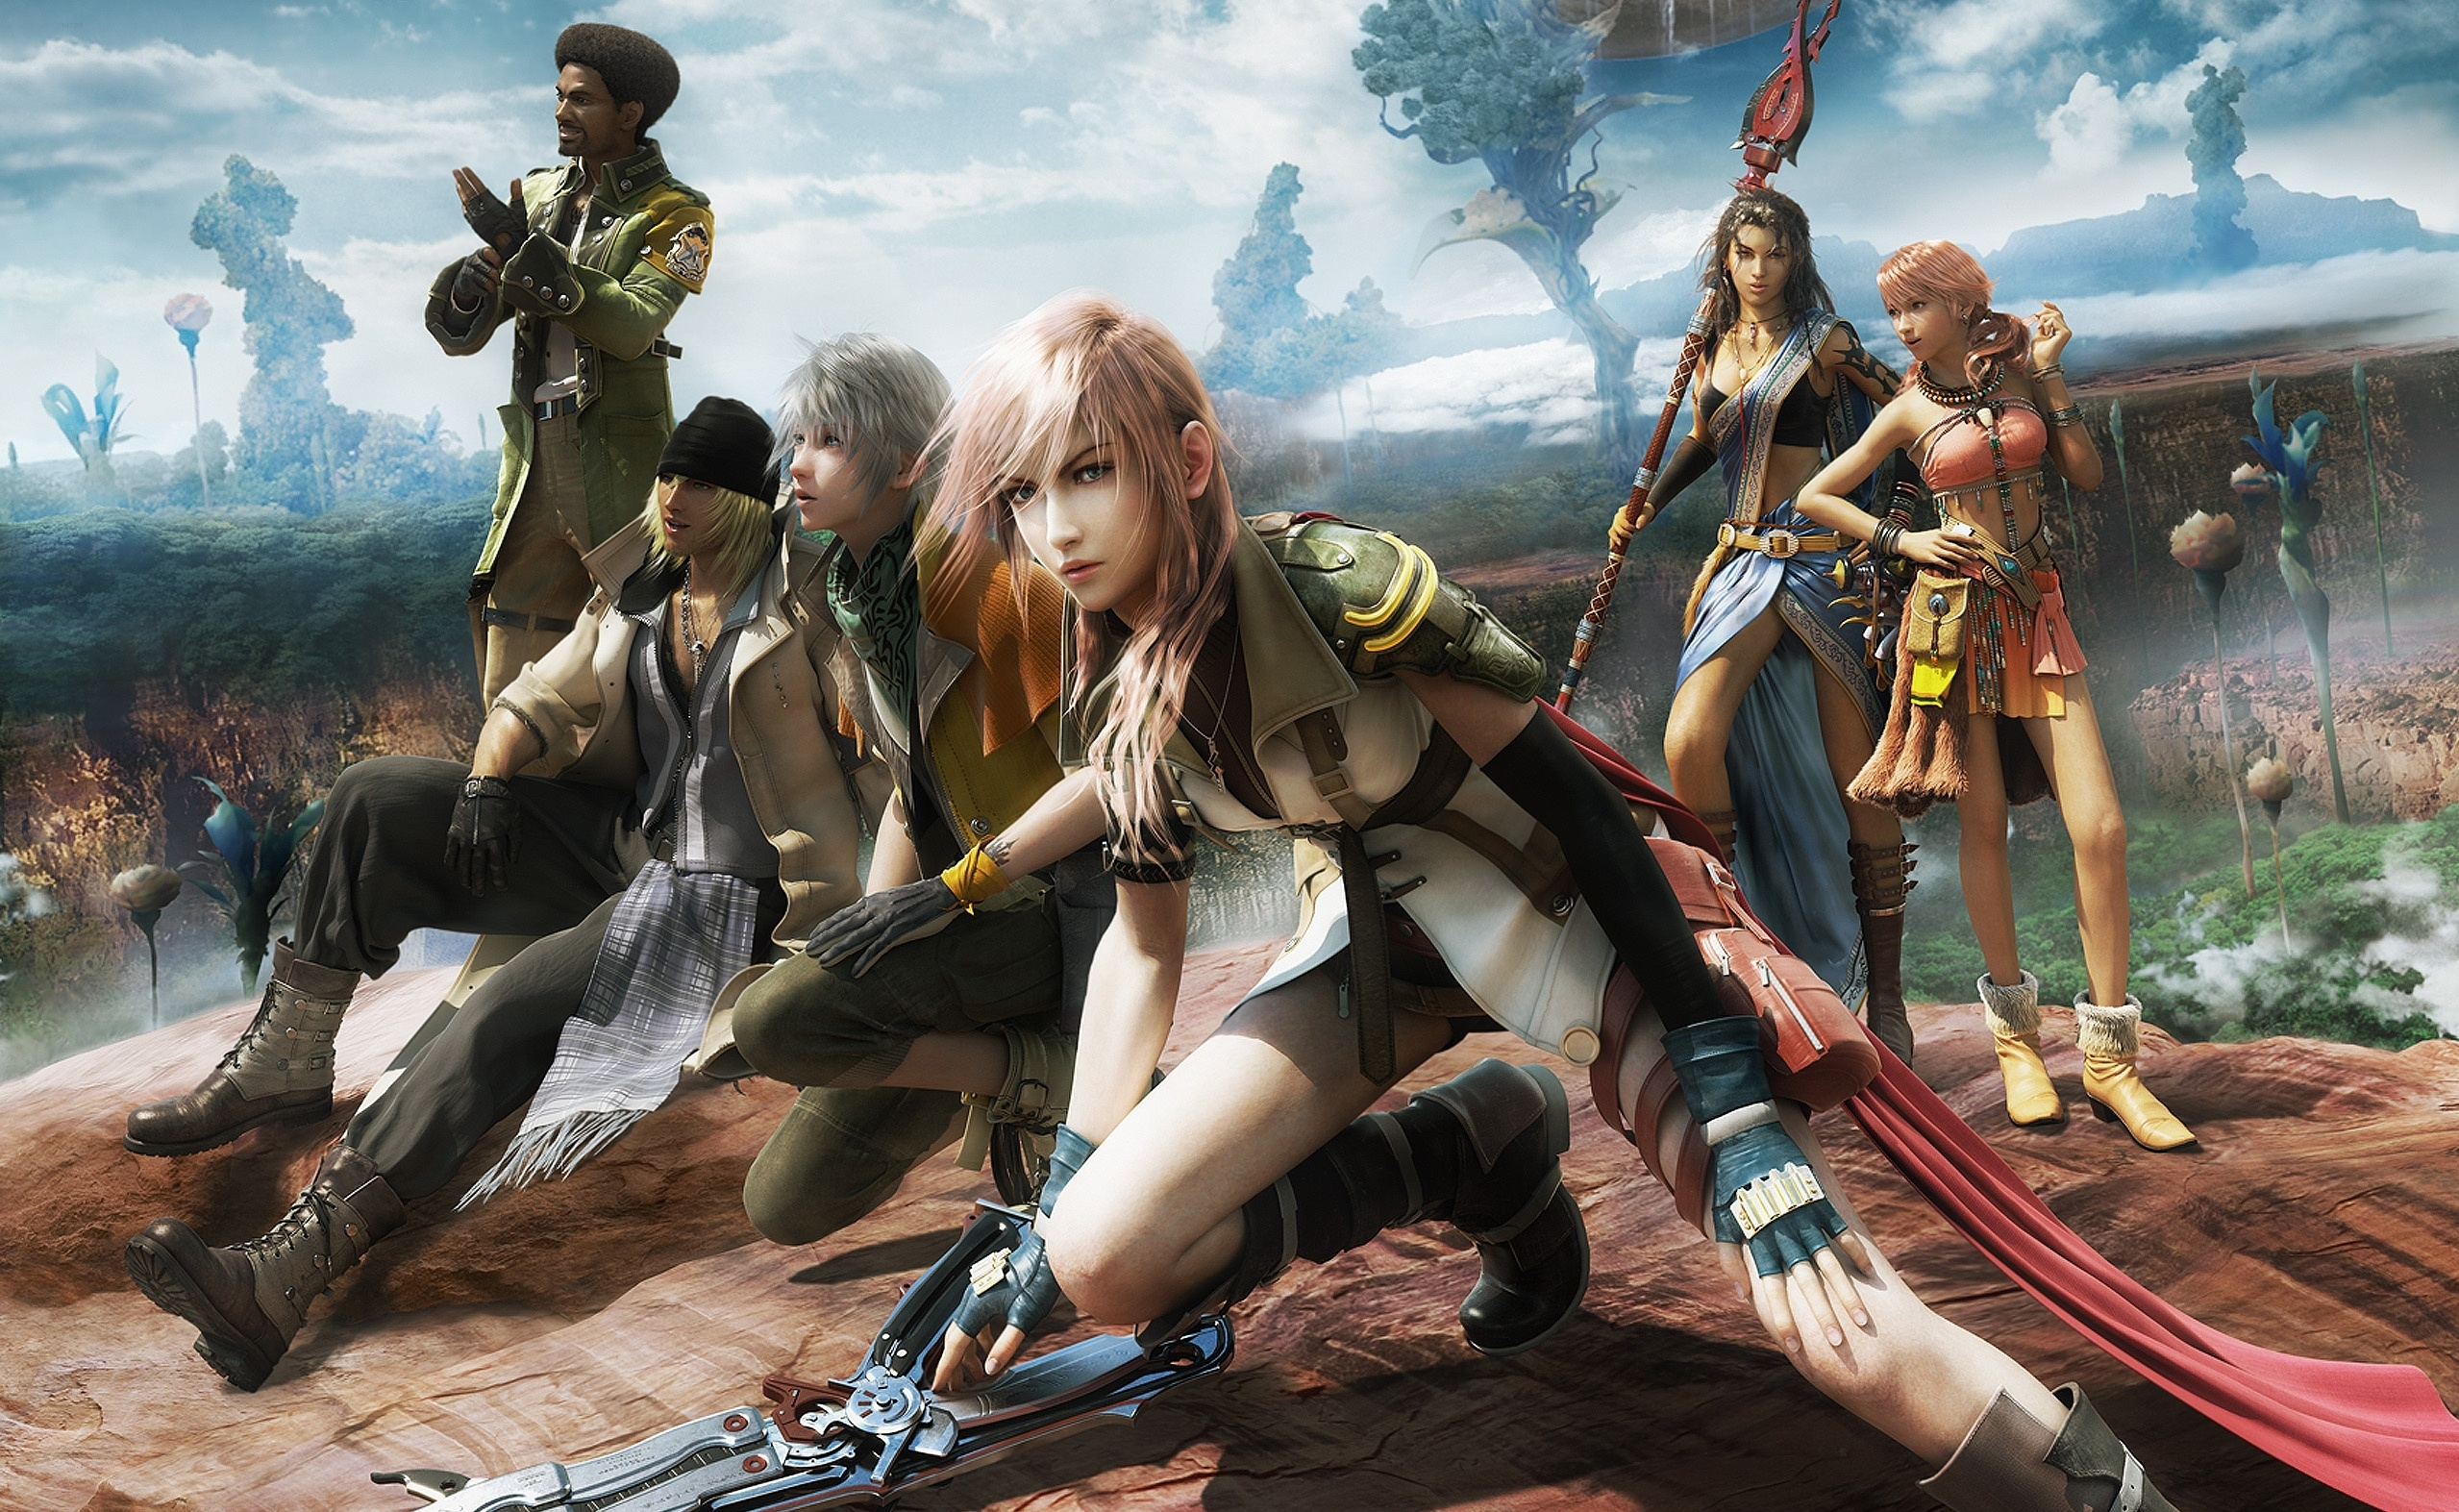 140 final fantasy xiii hd wallpapers | background images - wallpaper